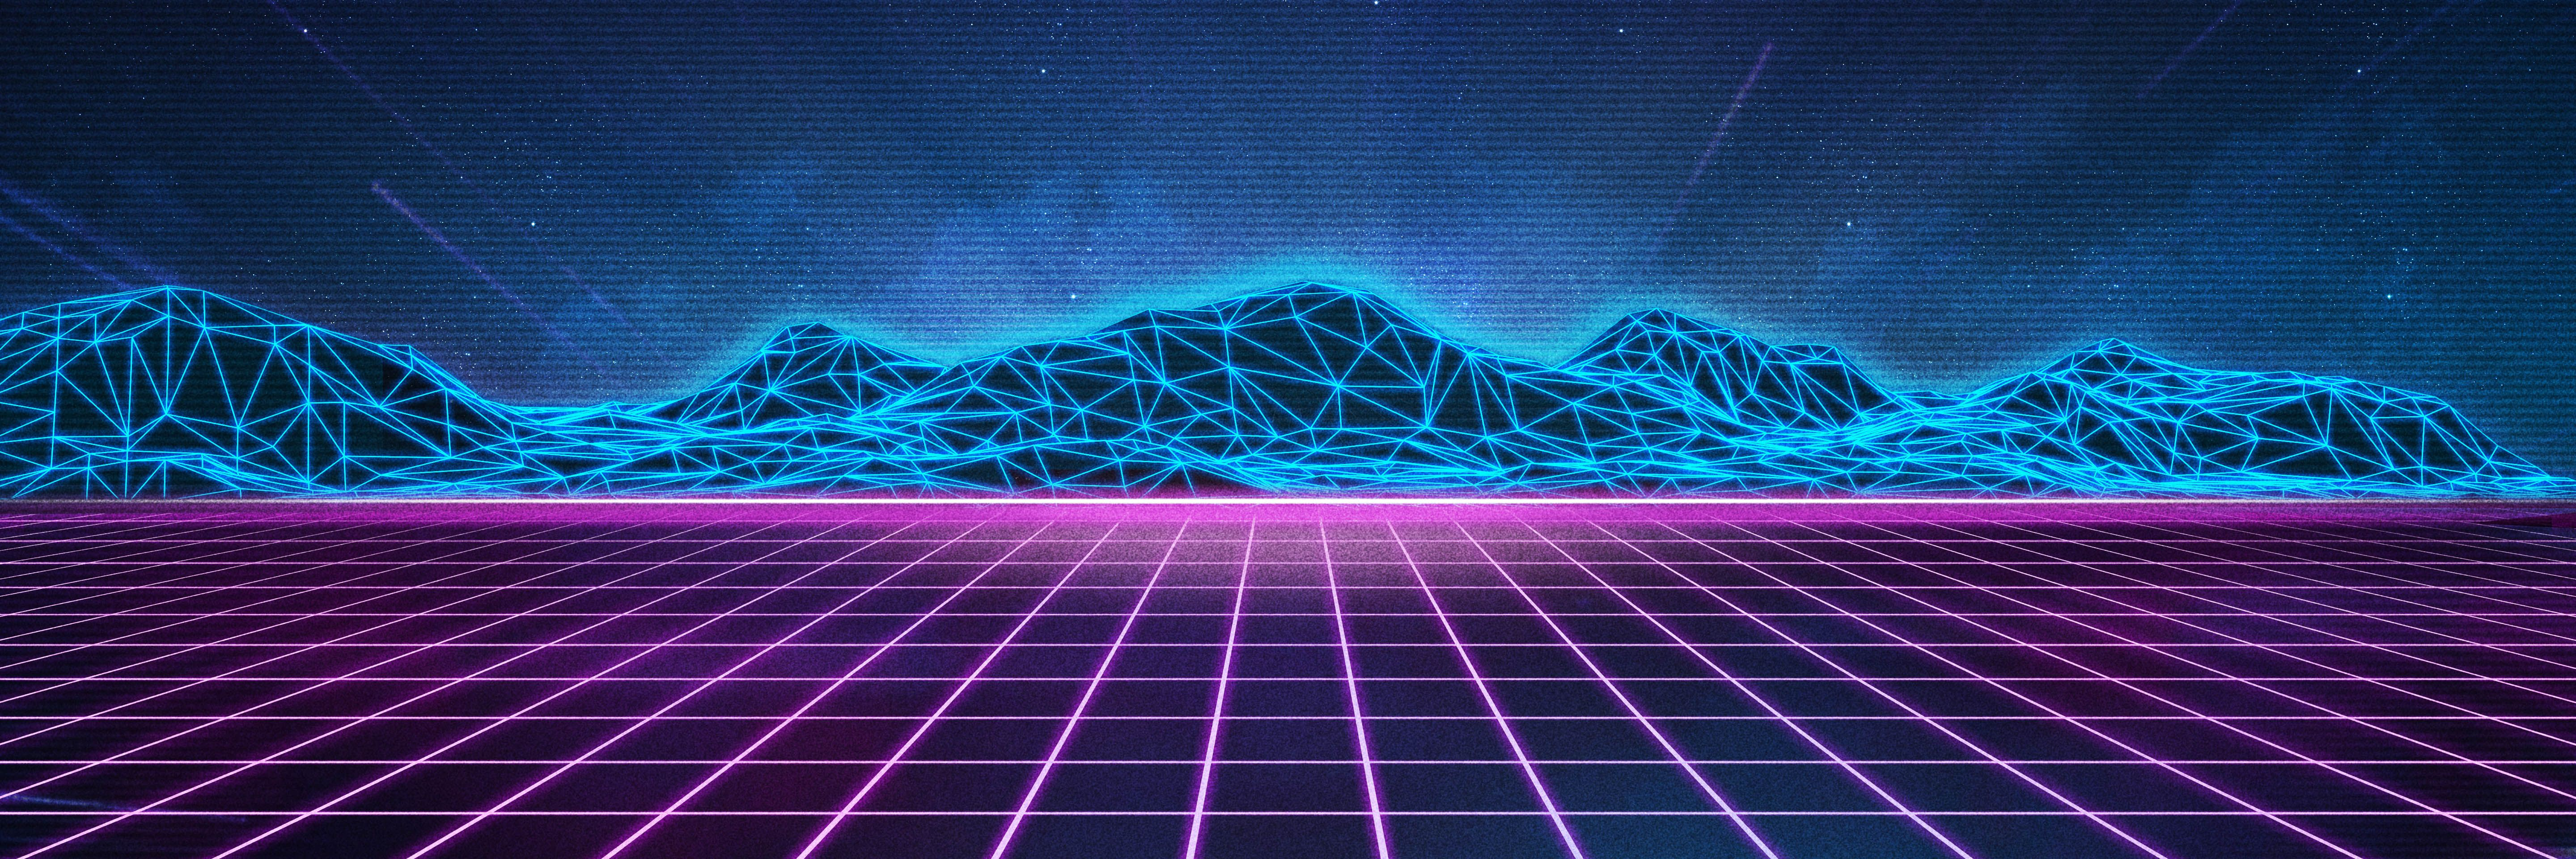 Synthwave : wallpapers